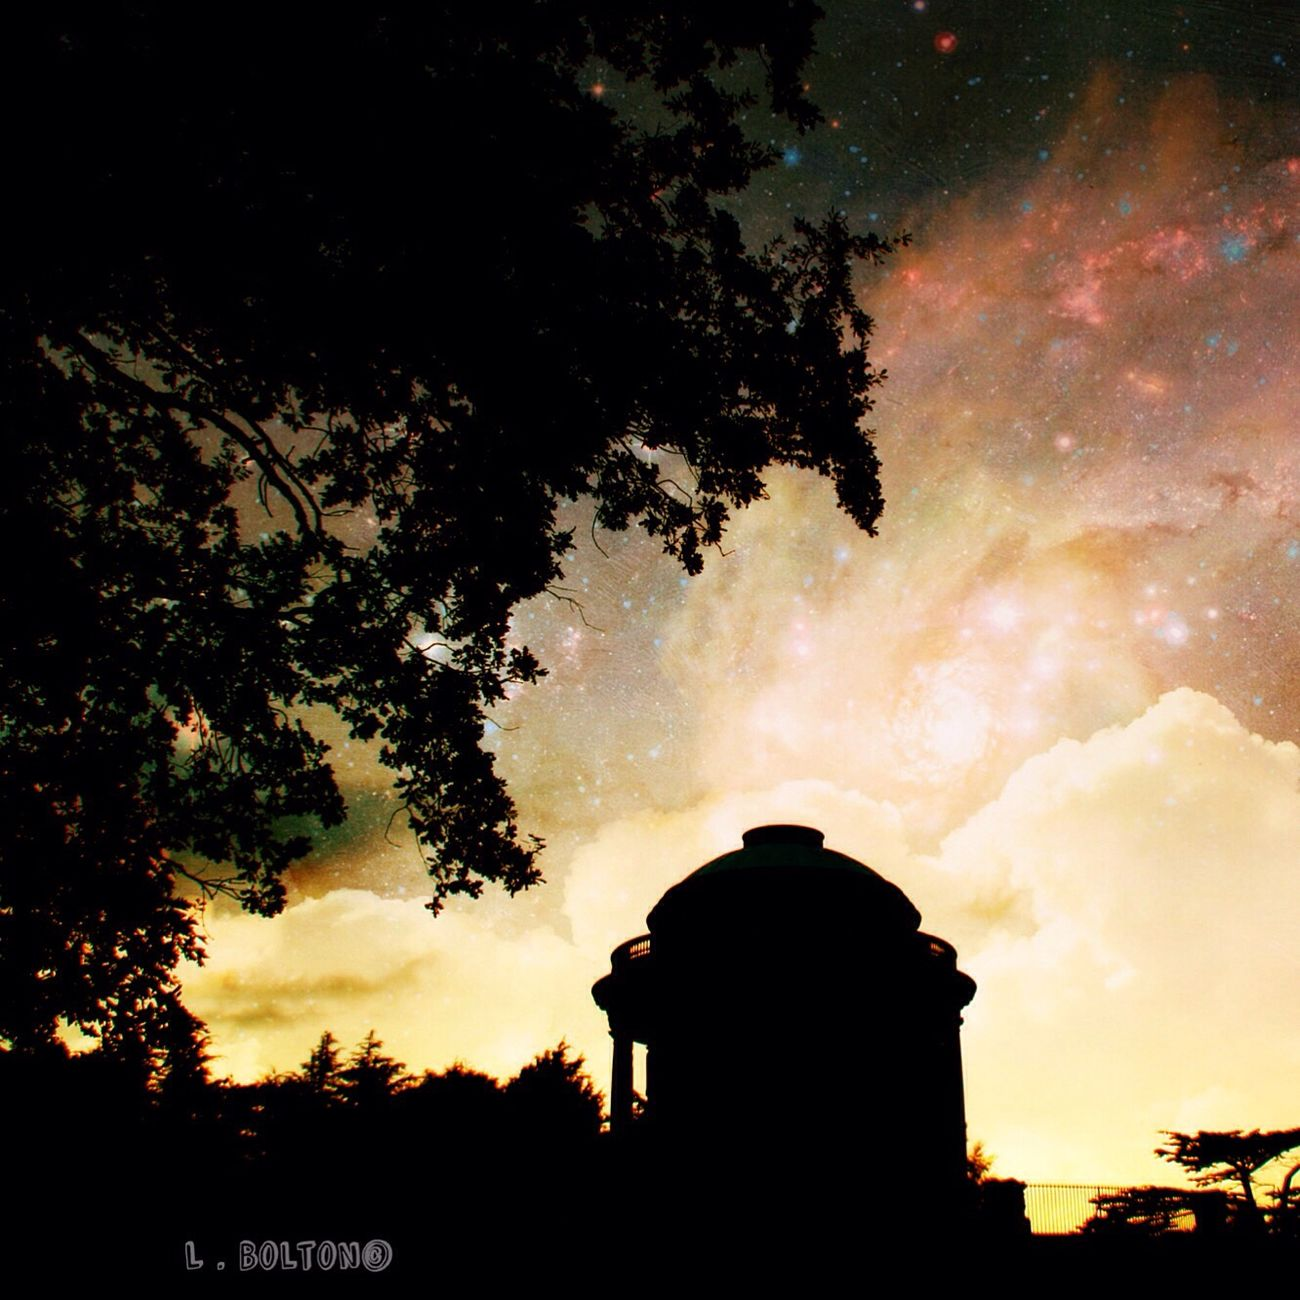 Silhouette Tree Sky Nature Outdoors Beauty In Nature No People Day Galaxy Stars Mausoleum History Architecture EyeEm Best Shots Majestic Canonphotography Exploring Sky_collection